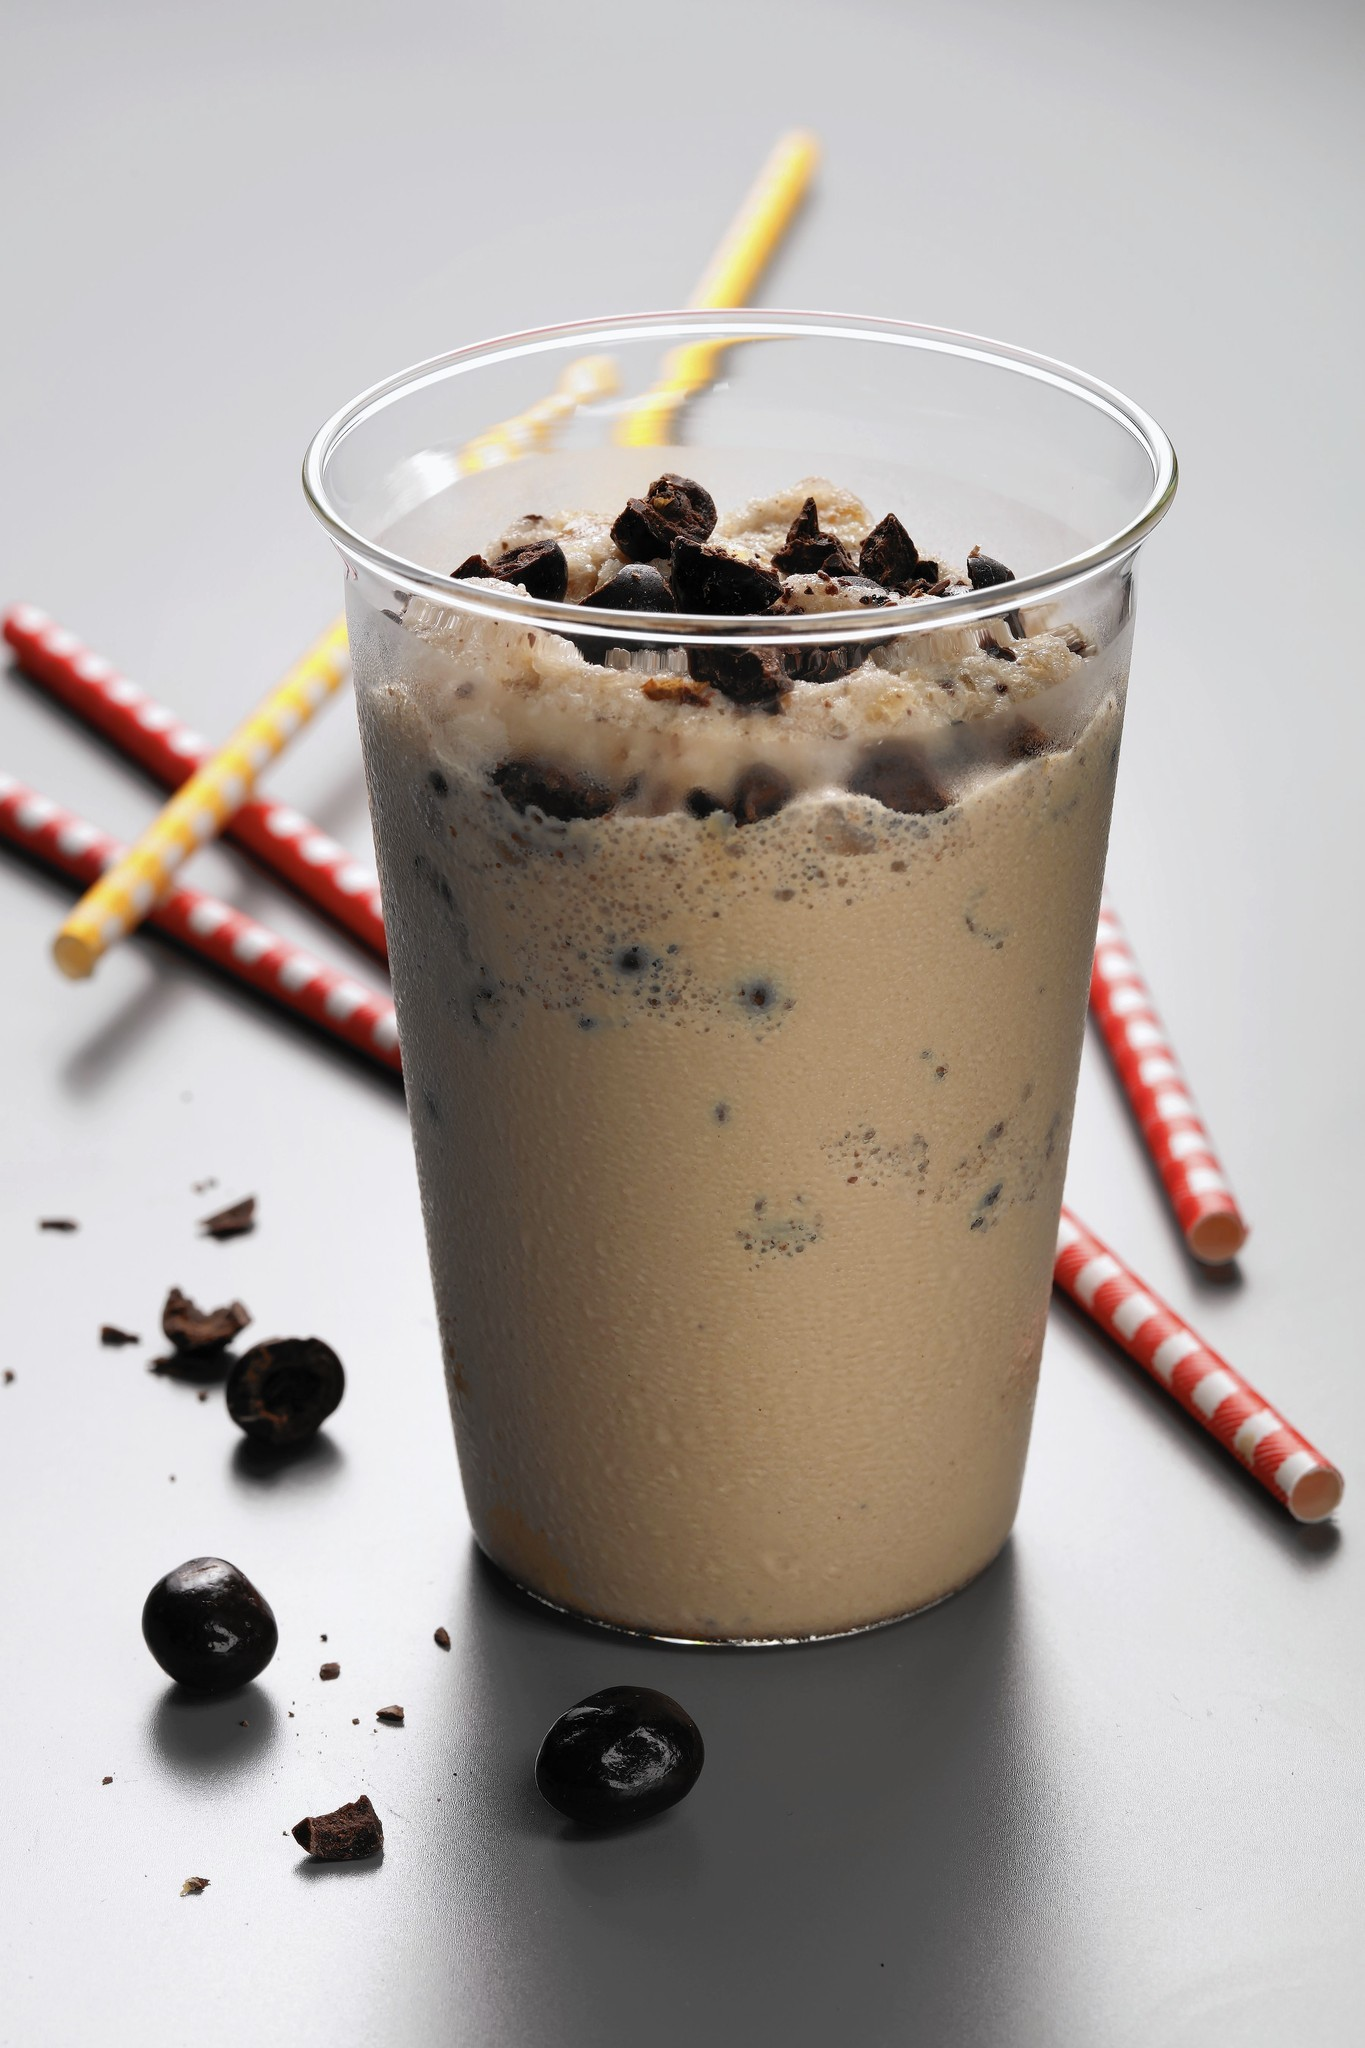 Chocolate-covered beans give extra kick to iced coffee